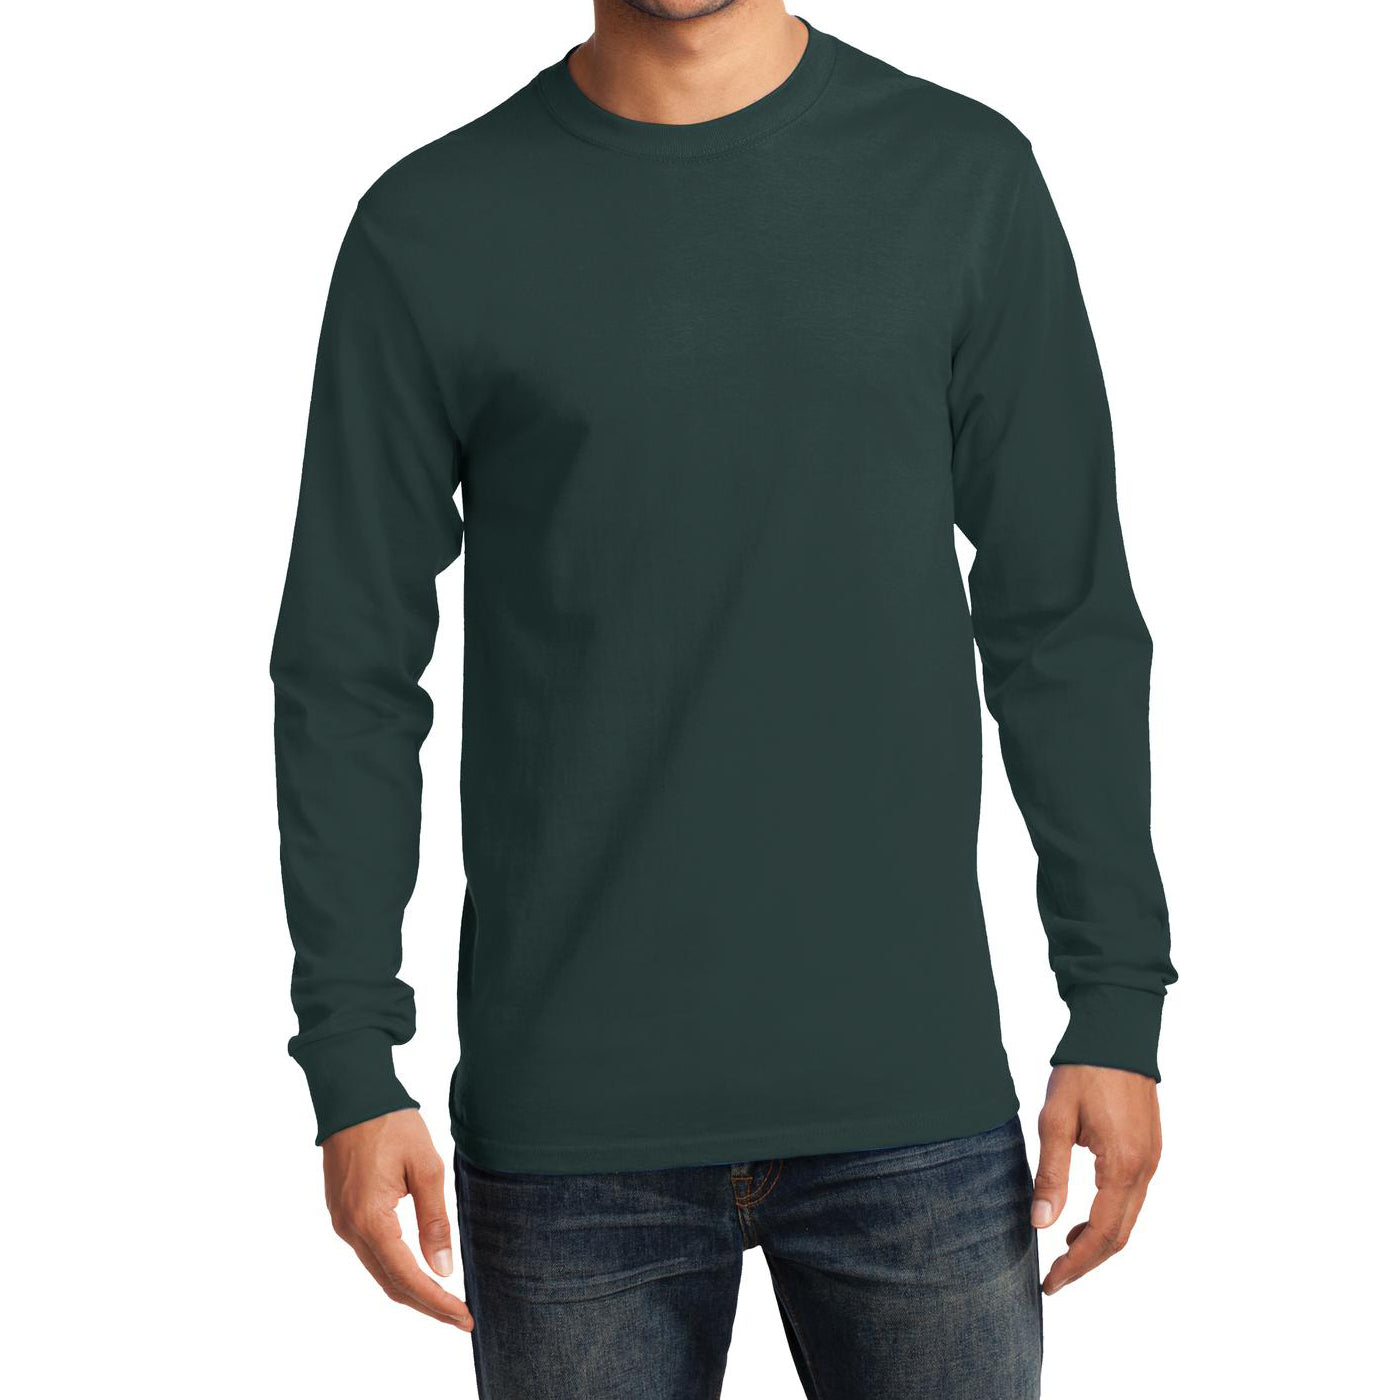 Men's Long Sleeve Essential Tee - Dark Green - Front